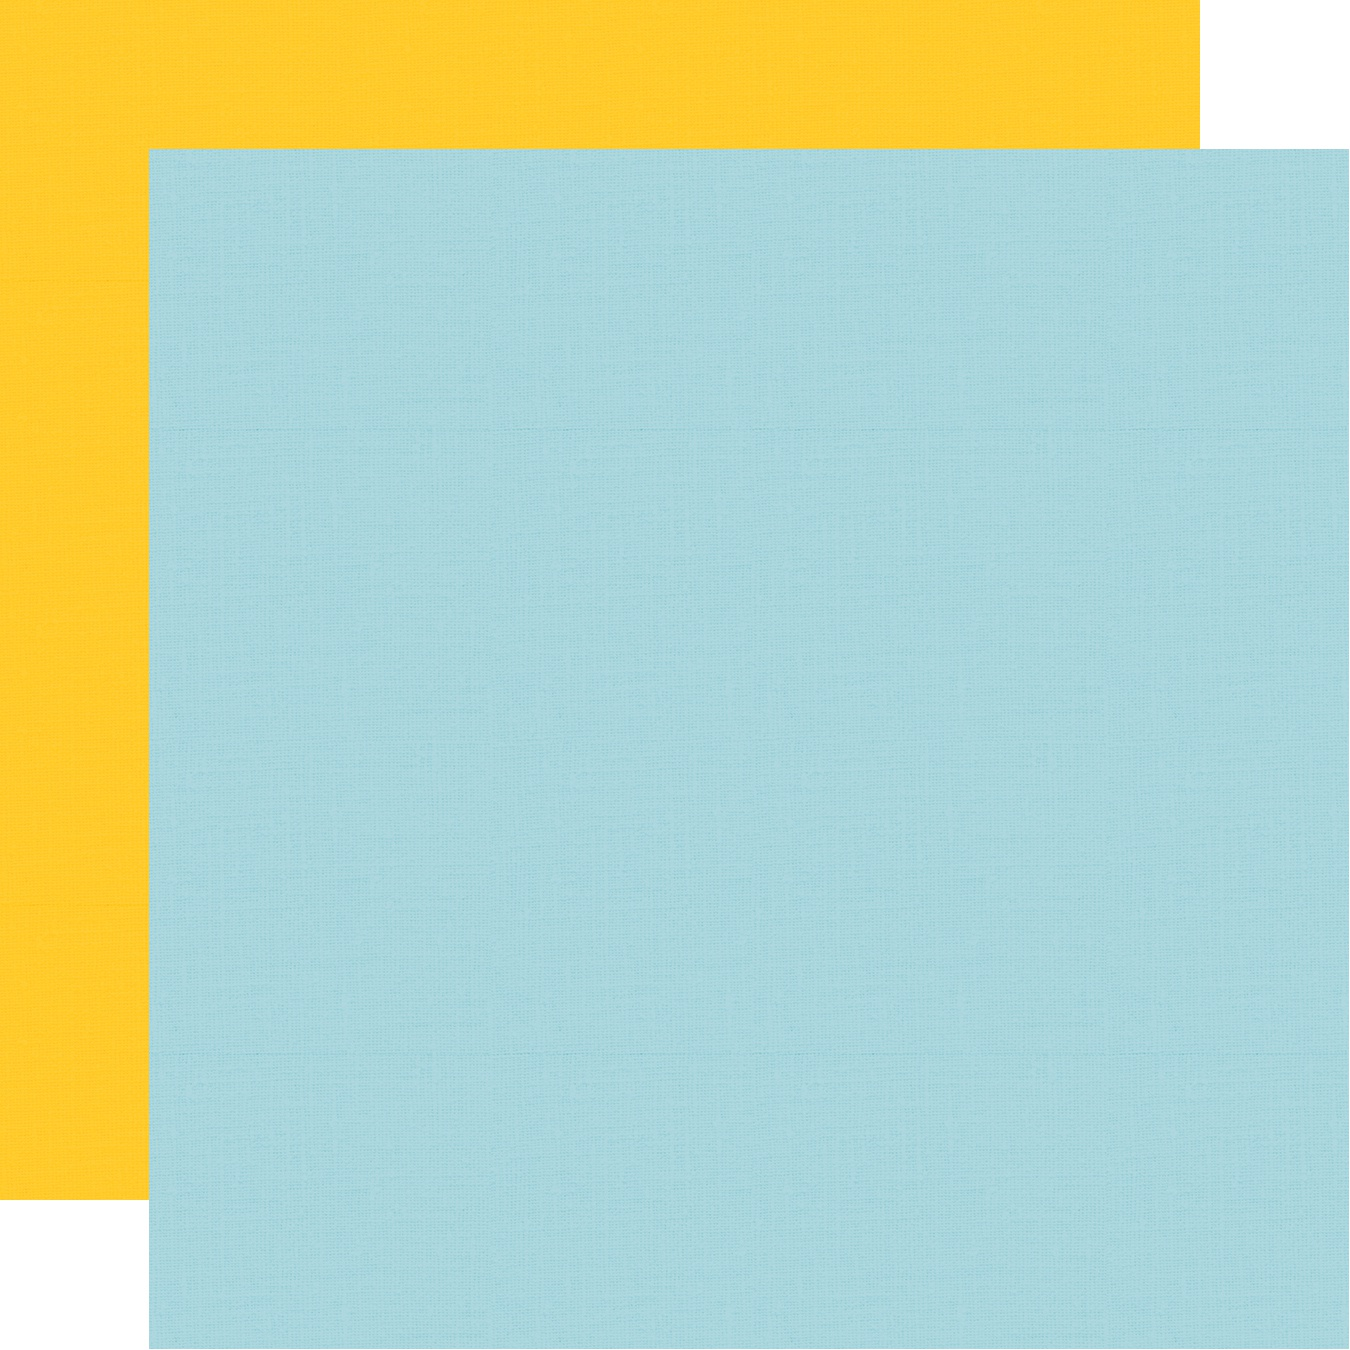 Say Cheese 4 Double-Sided Cardstock 12X12-Yellow/Light Blue Simple Basic